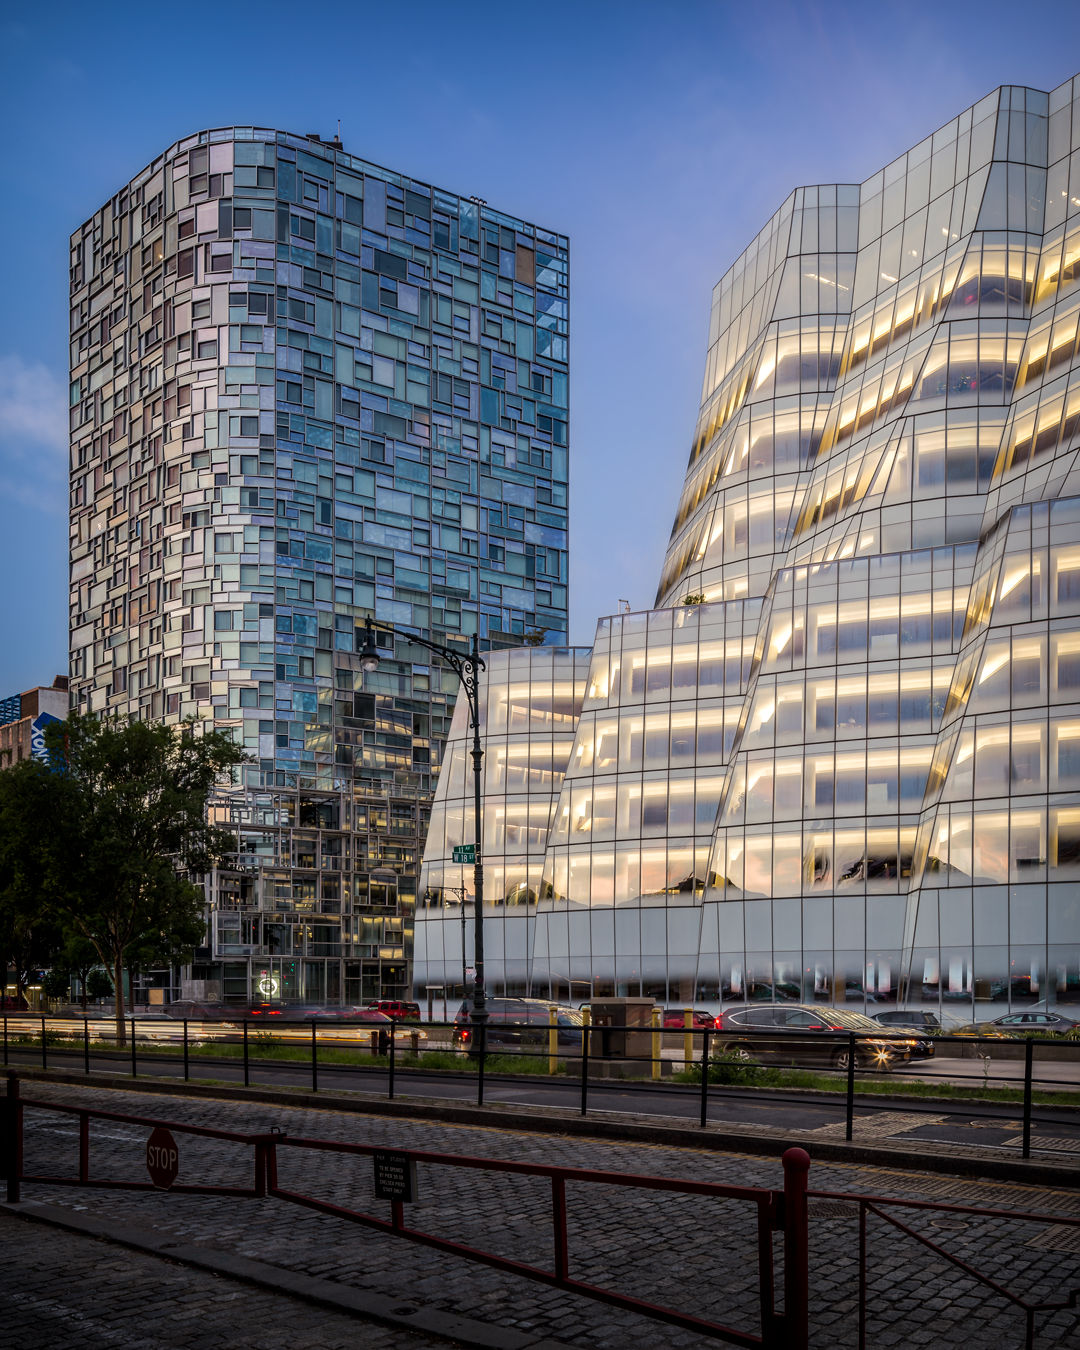 IAC Building by Frank Gehry and 100 Eleventh Avenue by Jean Nouvel located in the Chelsea neighborhood of Manhattan. Photo credit: Eric Soltan